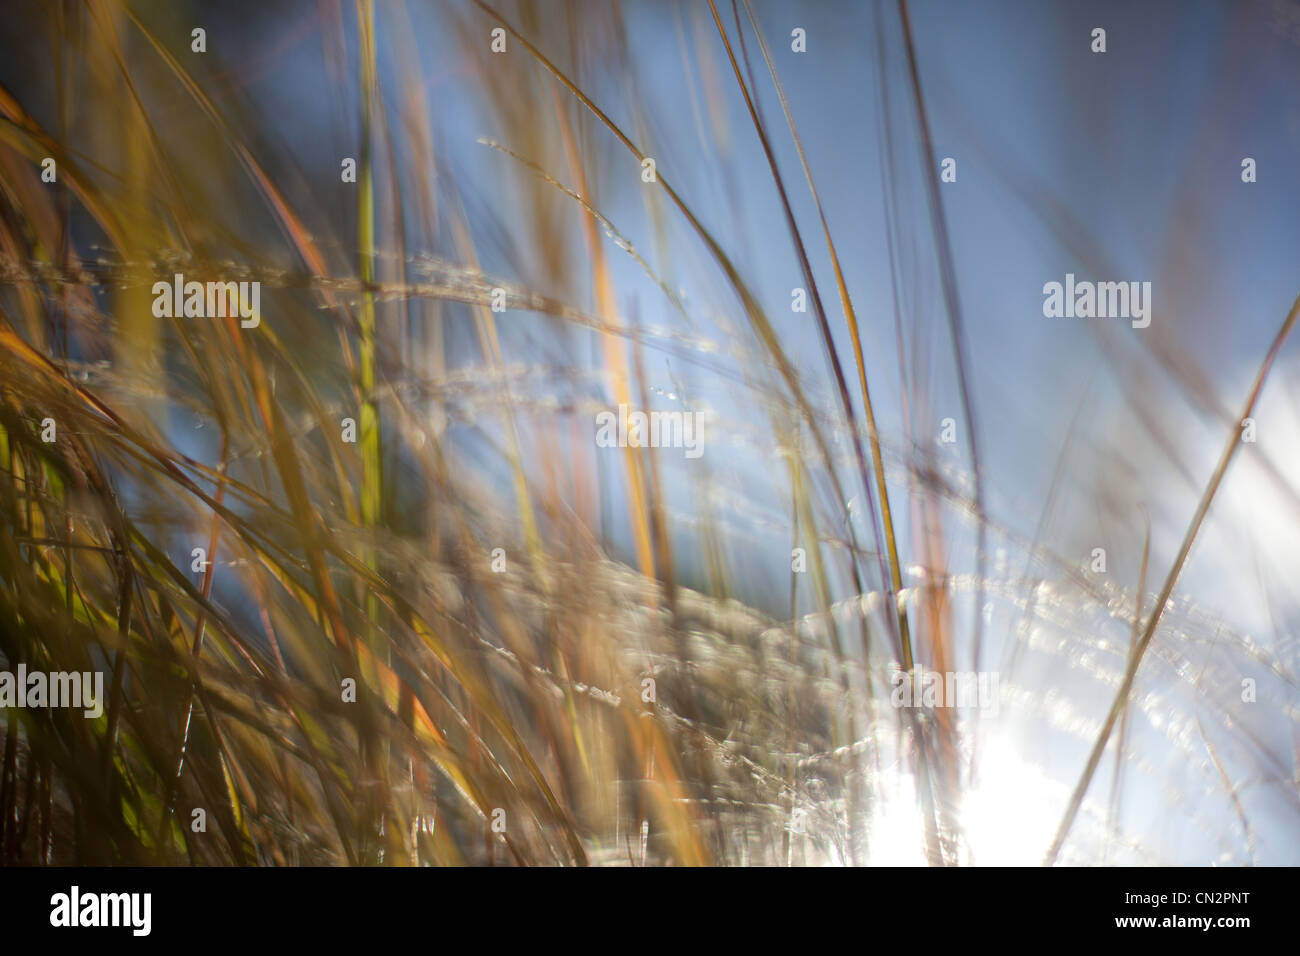 Grass abstract, close up - Stock Image